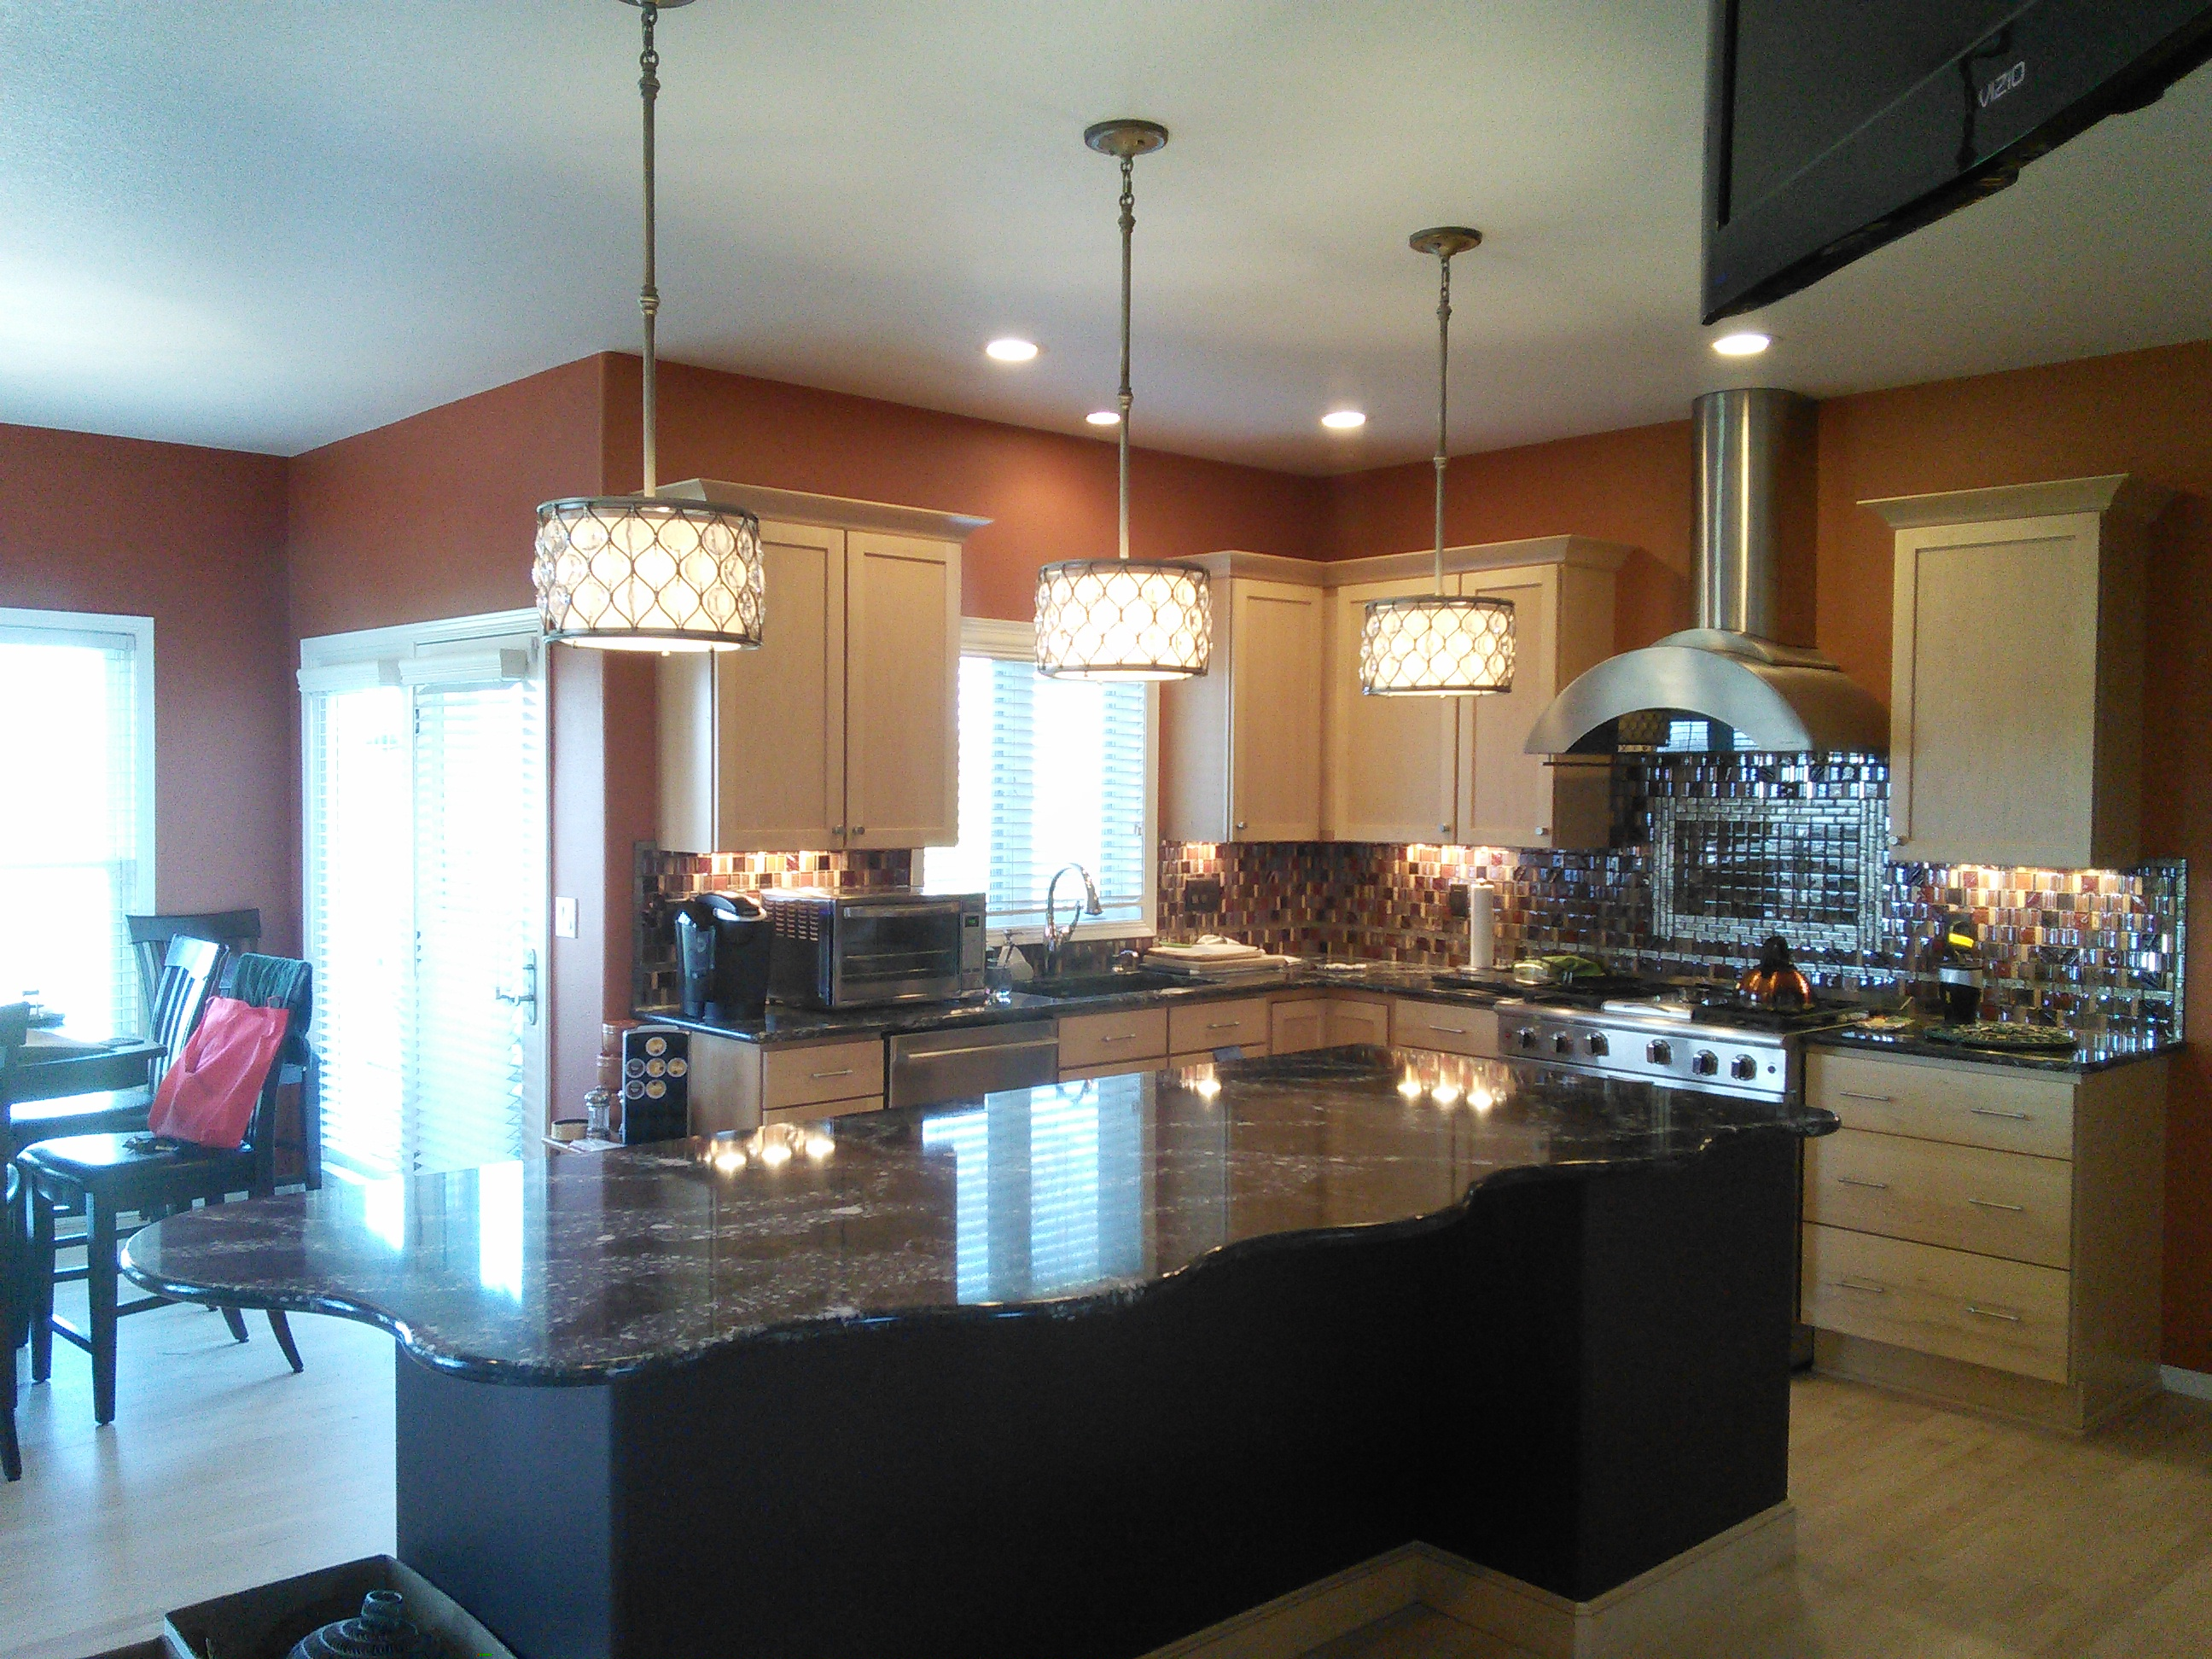 Kitchen Remodeling Contractor Eastern Iowa Home Town Restyling - Minor kitchen remodel